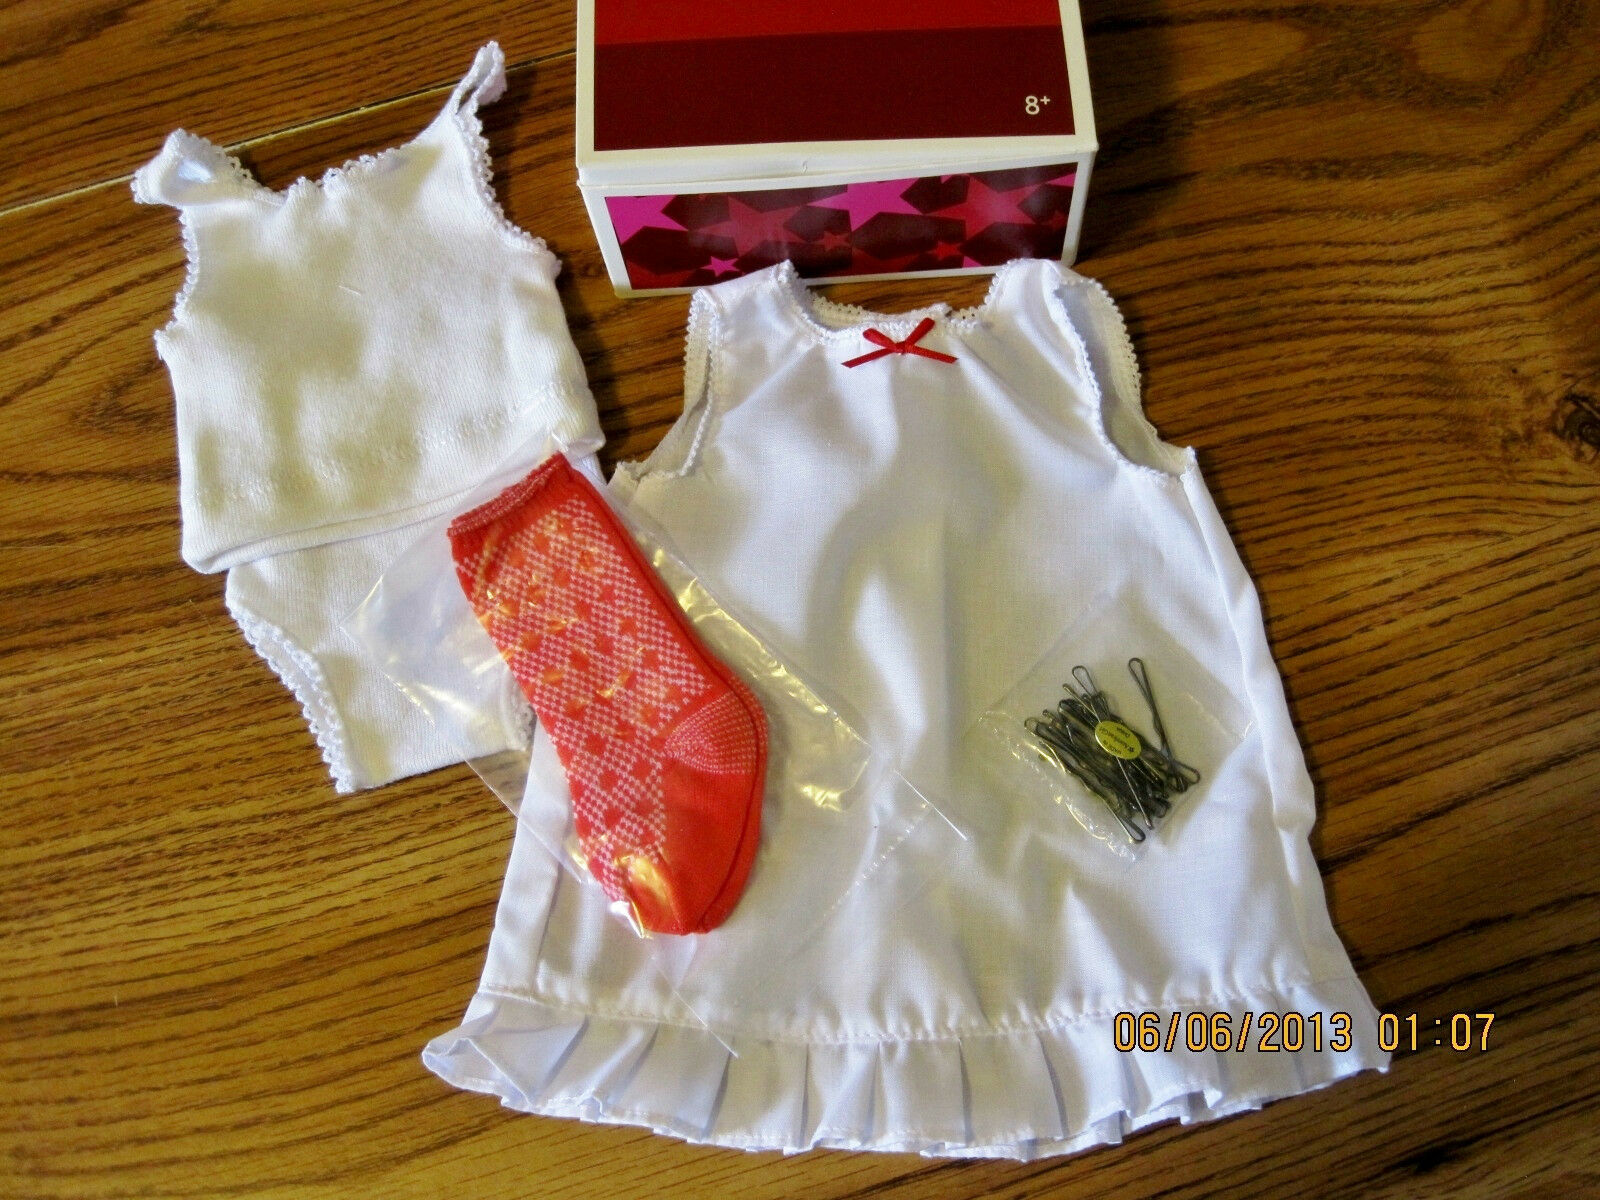 American Girl Molly Emily's Undies RETIrot and hard to find NIB New in Box PC